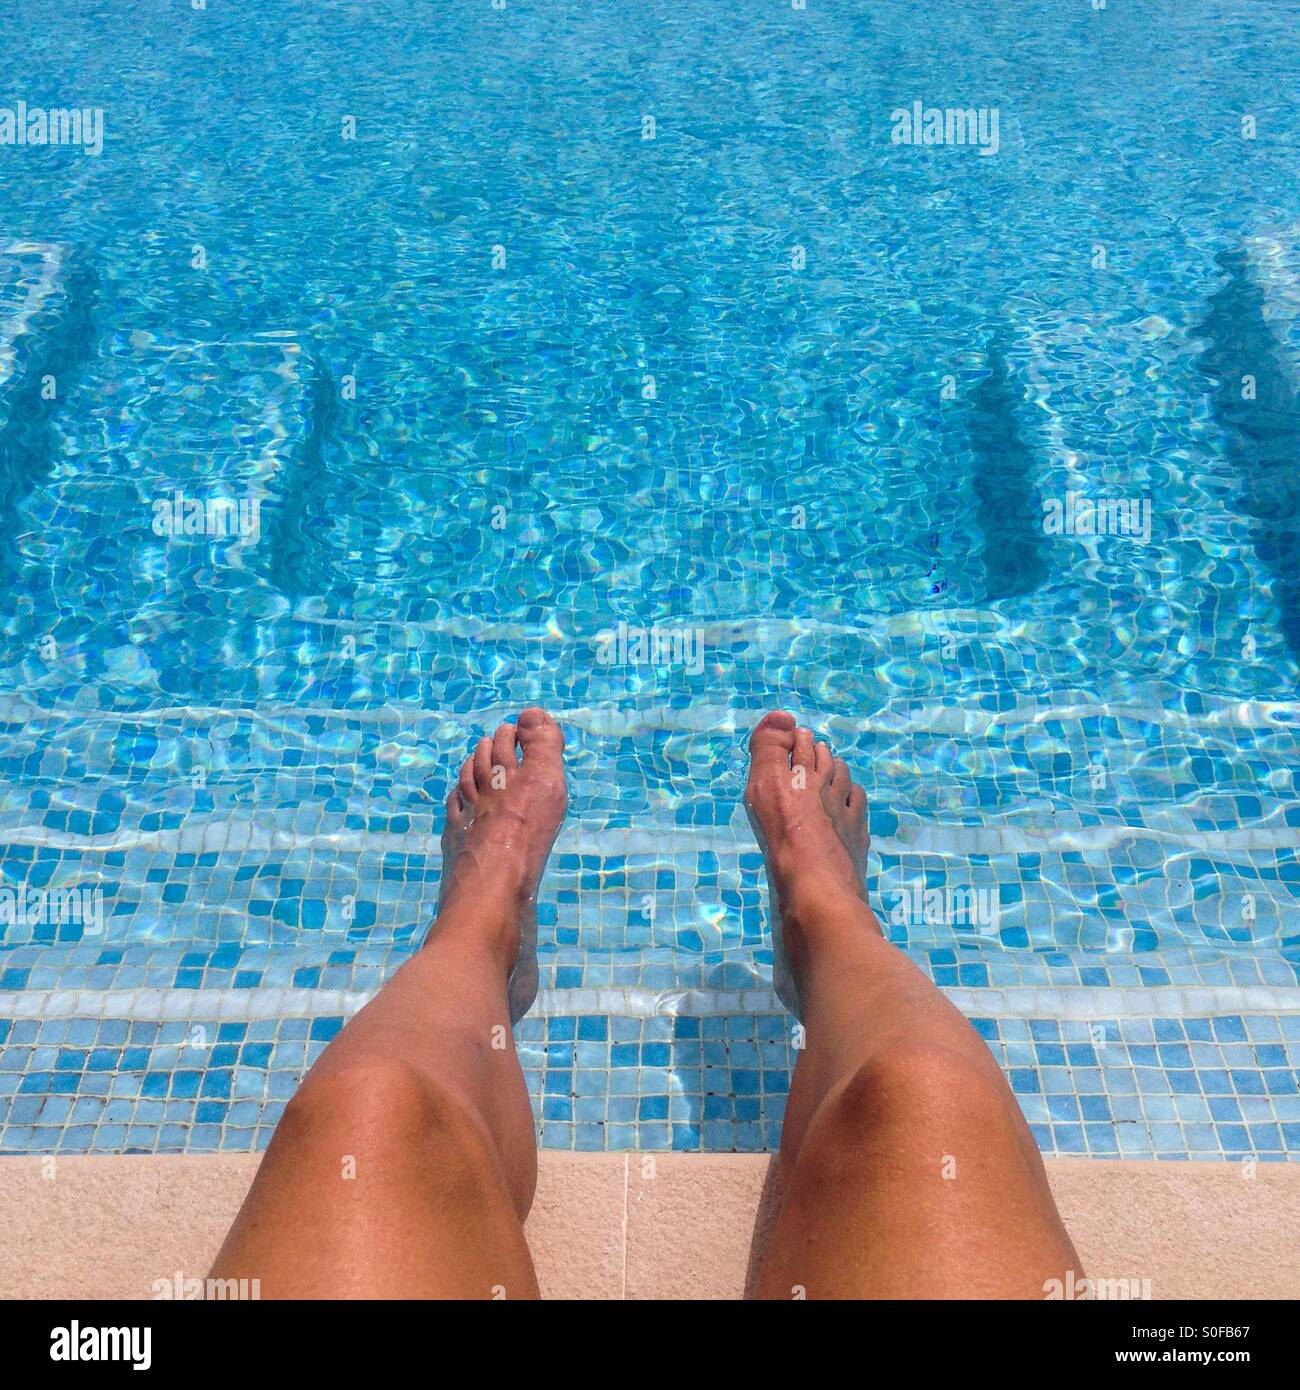 Feet And Legs On A Swimming Pool With A Square Shape Of Steps Stock Photo 310124703 Alamy